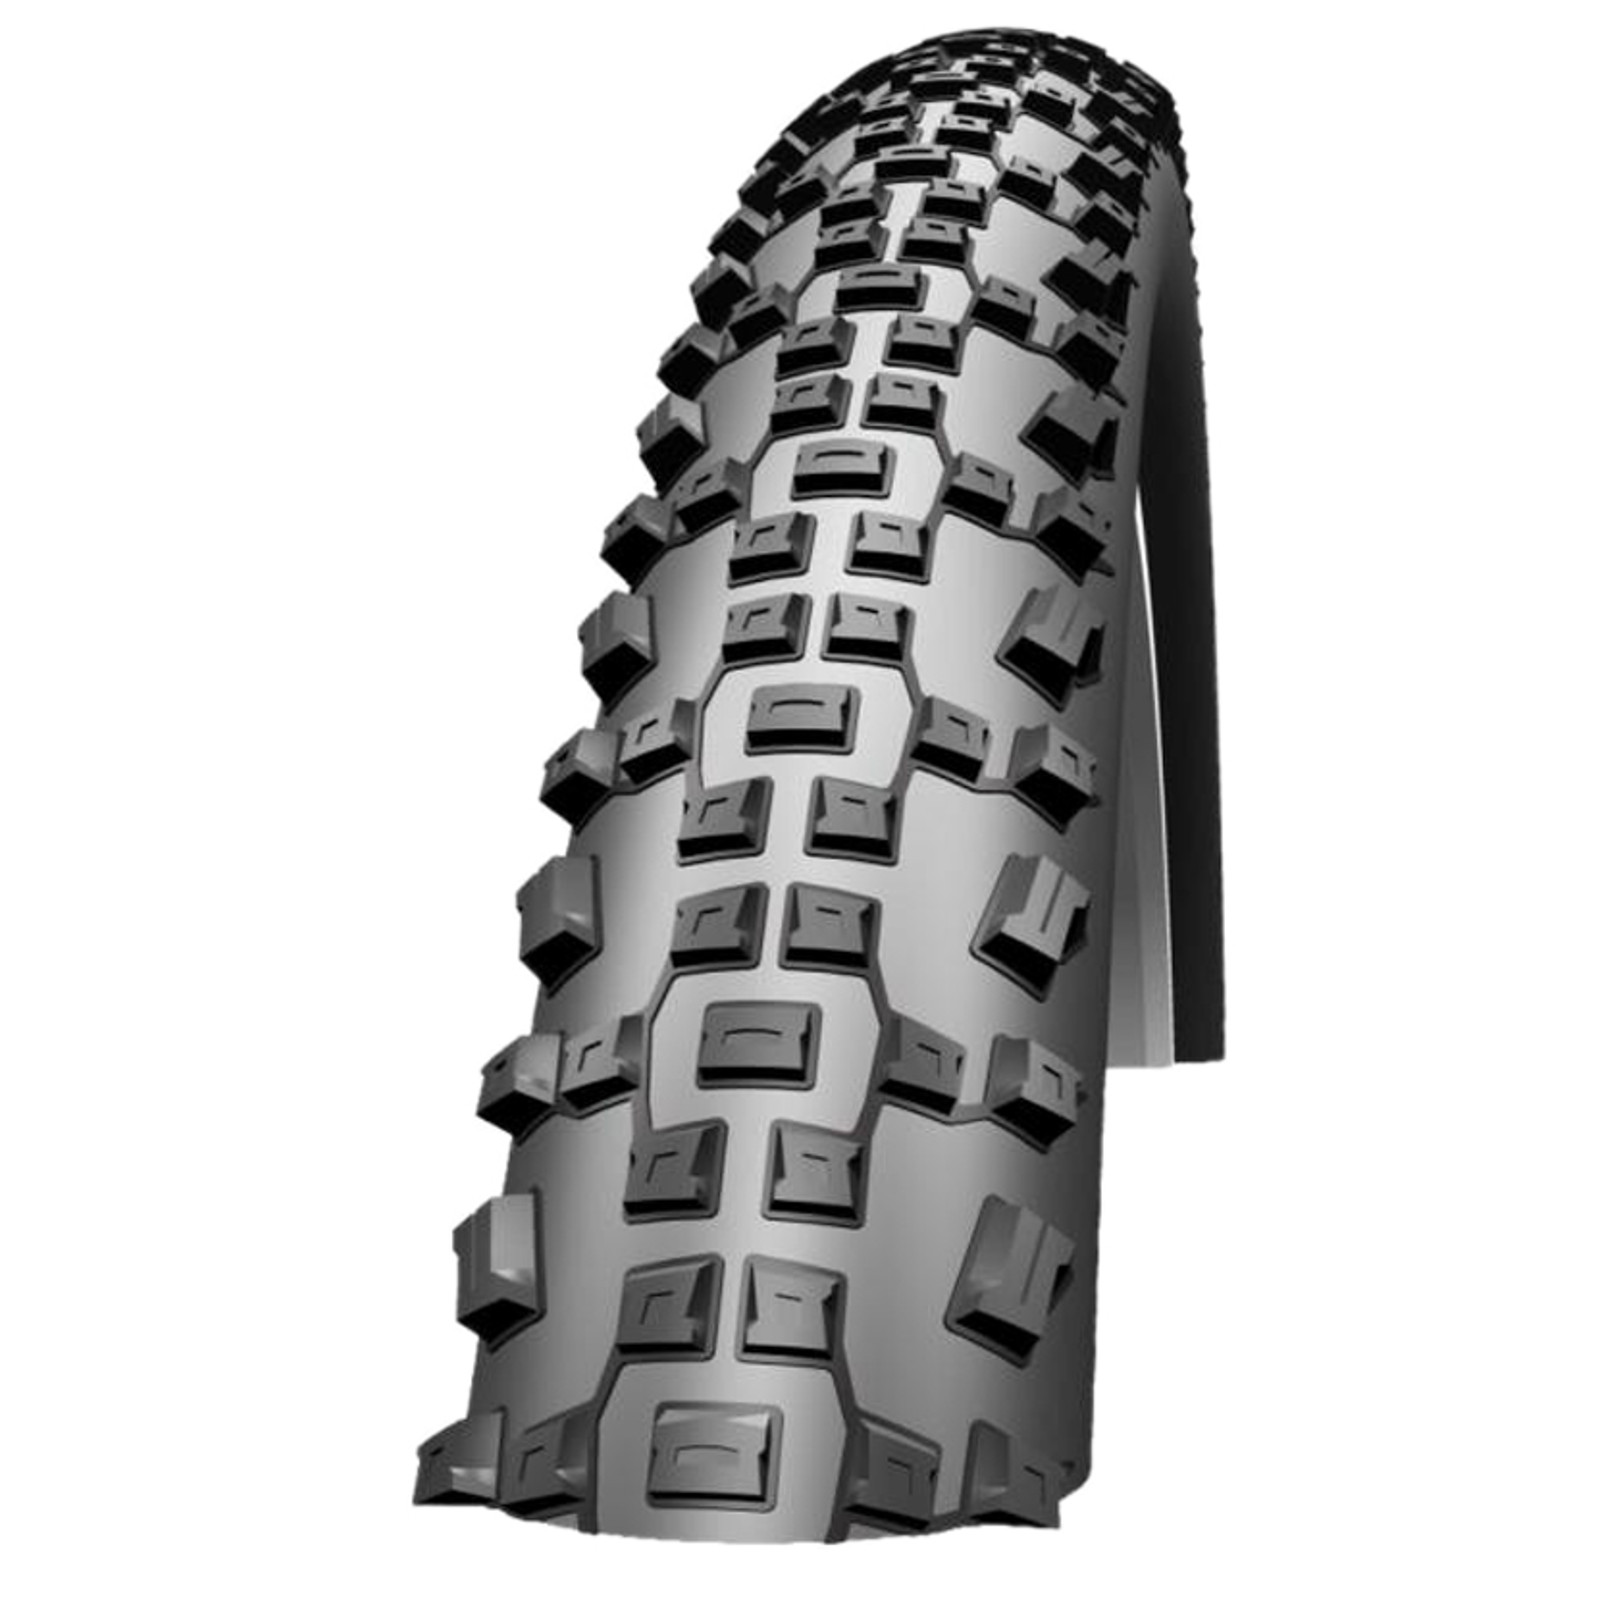 Bike-Tyre-26-X-2-1-Impac-Ridgepac-Knobbly-Mountain-Bike-Cycle-Tire